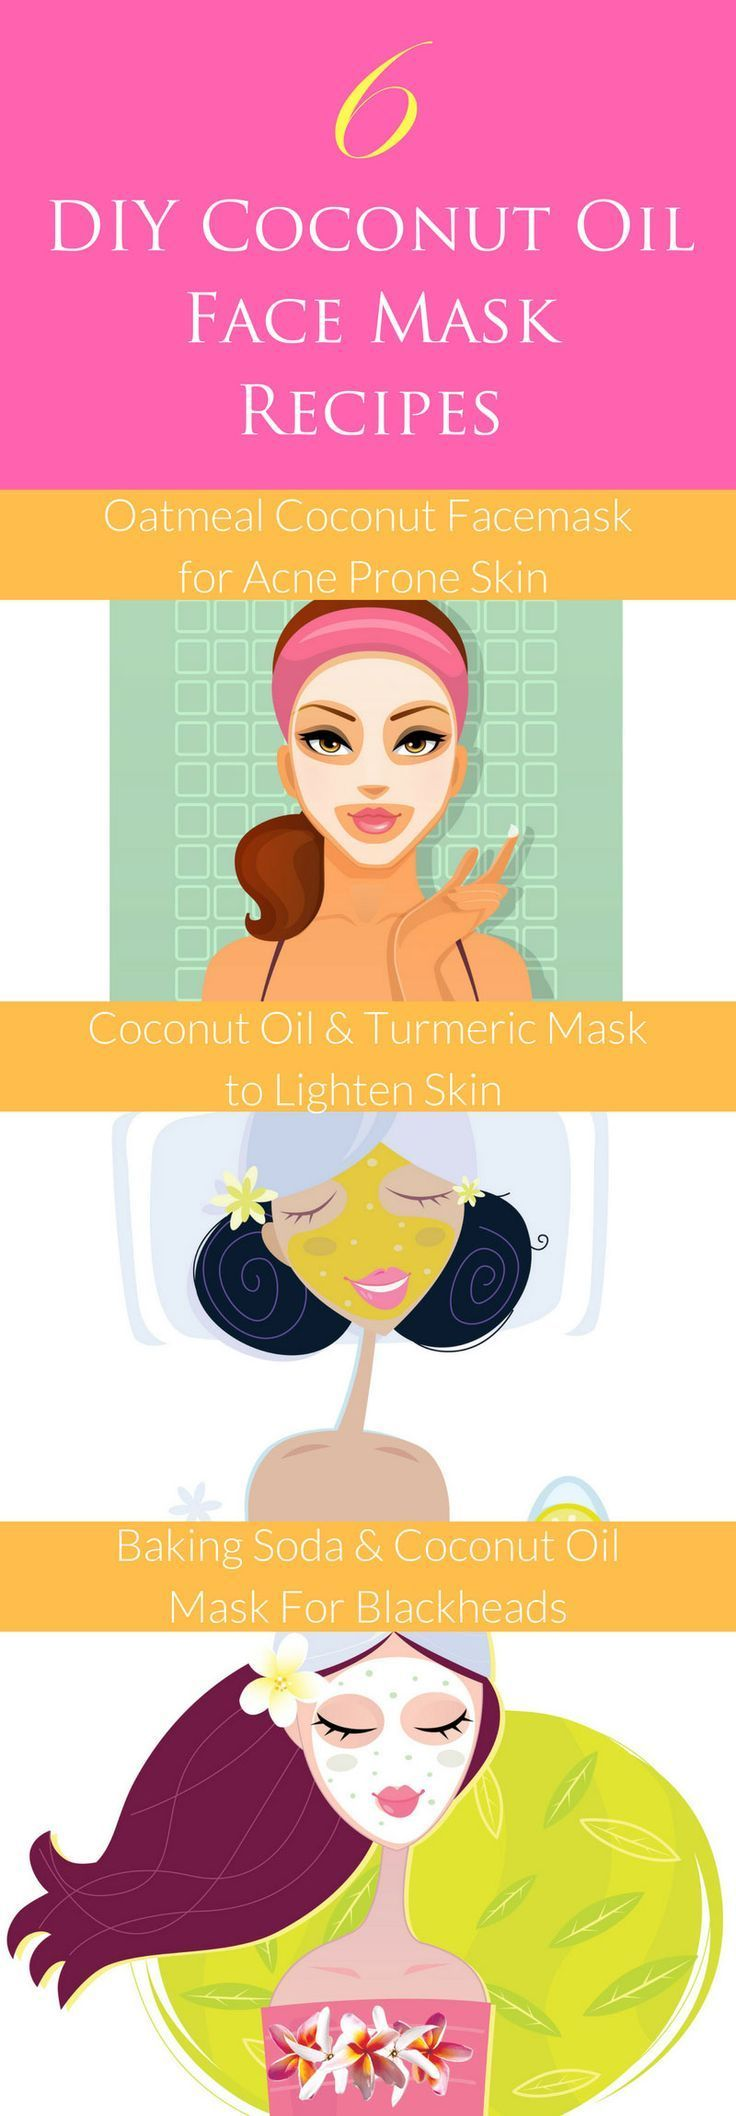 Natural Skin Care Tips: Coconut oil is naturally antibacterial and antifungal, is an exceptional moisturizer and is a great base for your DIY face mask recipes. Get your 6 DIY coconut oil facial recipes for you to try that are sure to leave your skin soft, supple and radiant http://www.purefiji.com/blog/coconut-oil-face-masks/